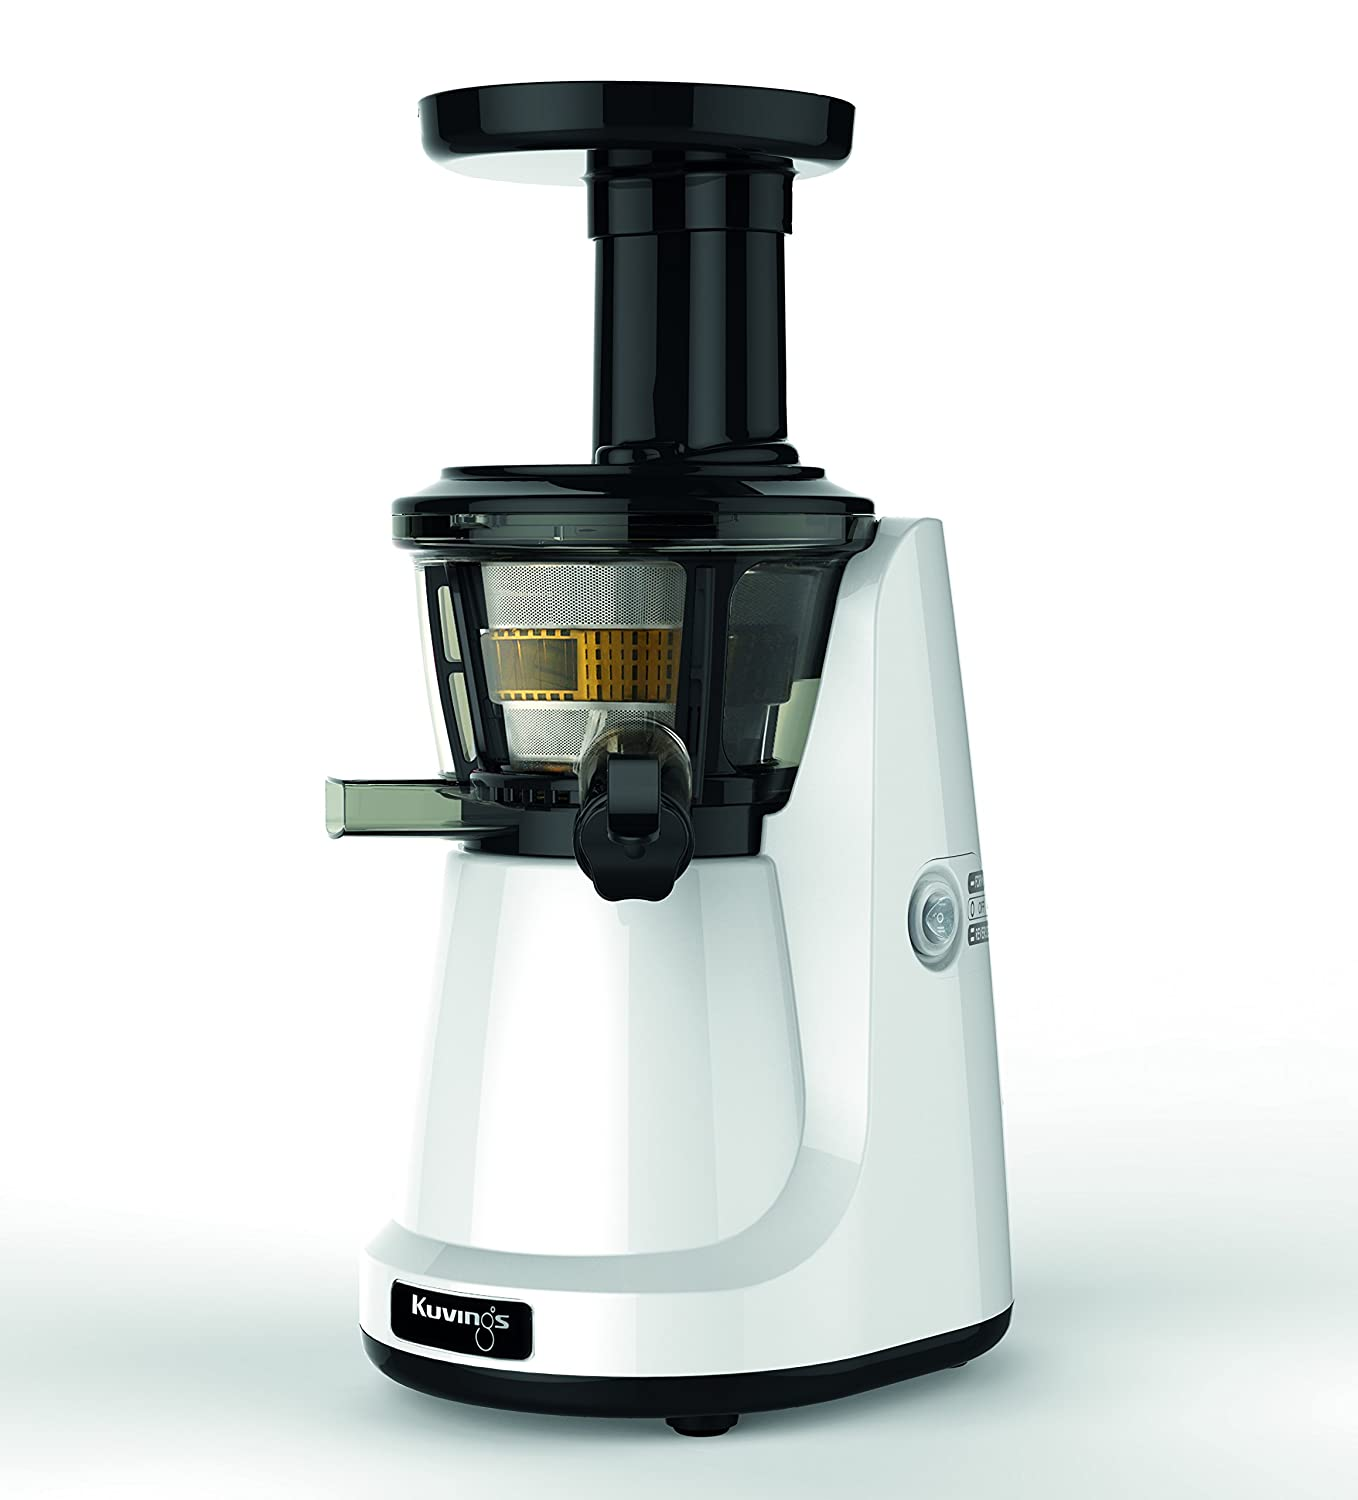 Kuvings NS Silent Juicer 321-Licuadora, Color Blanco: Amazon.es: Hogar